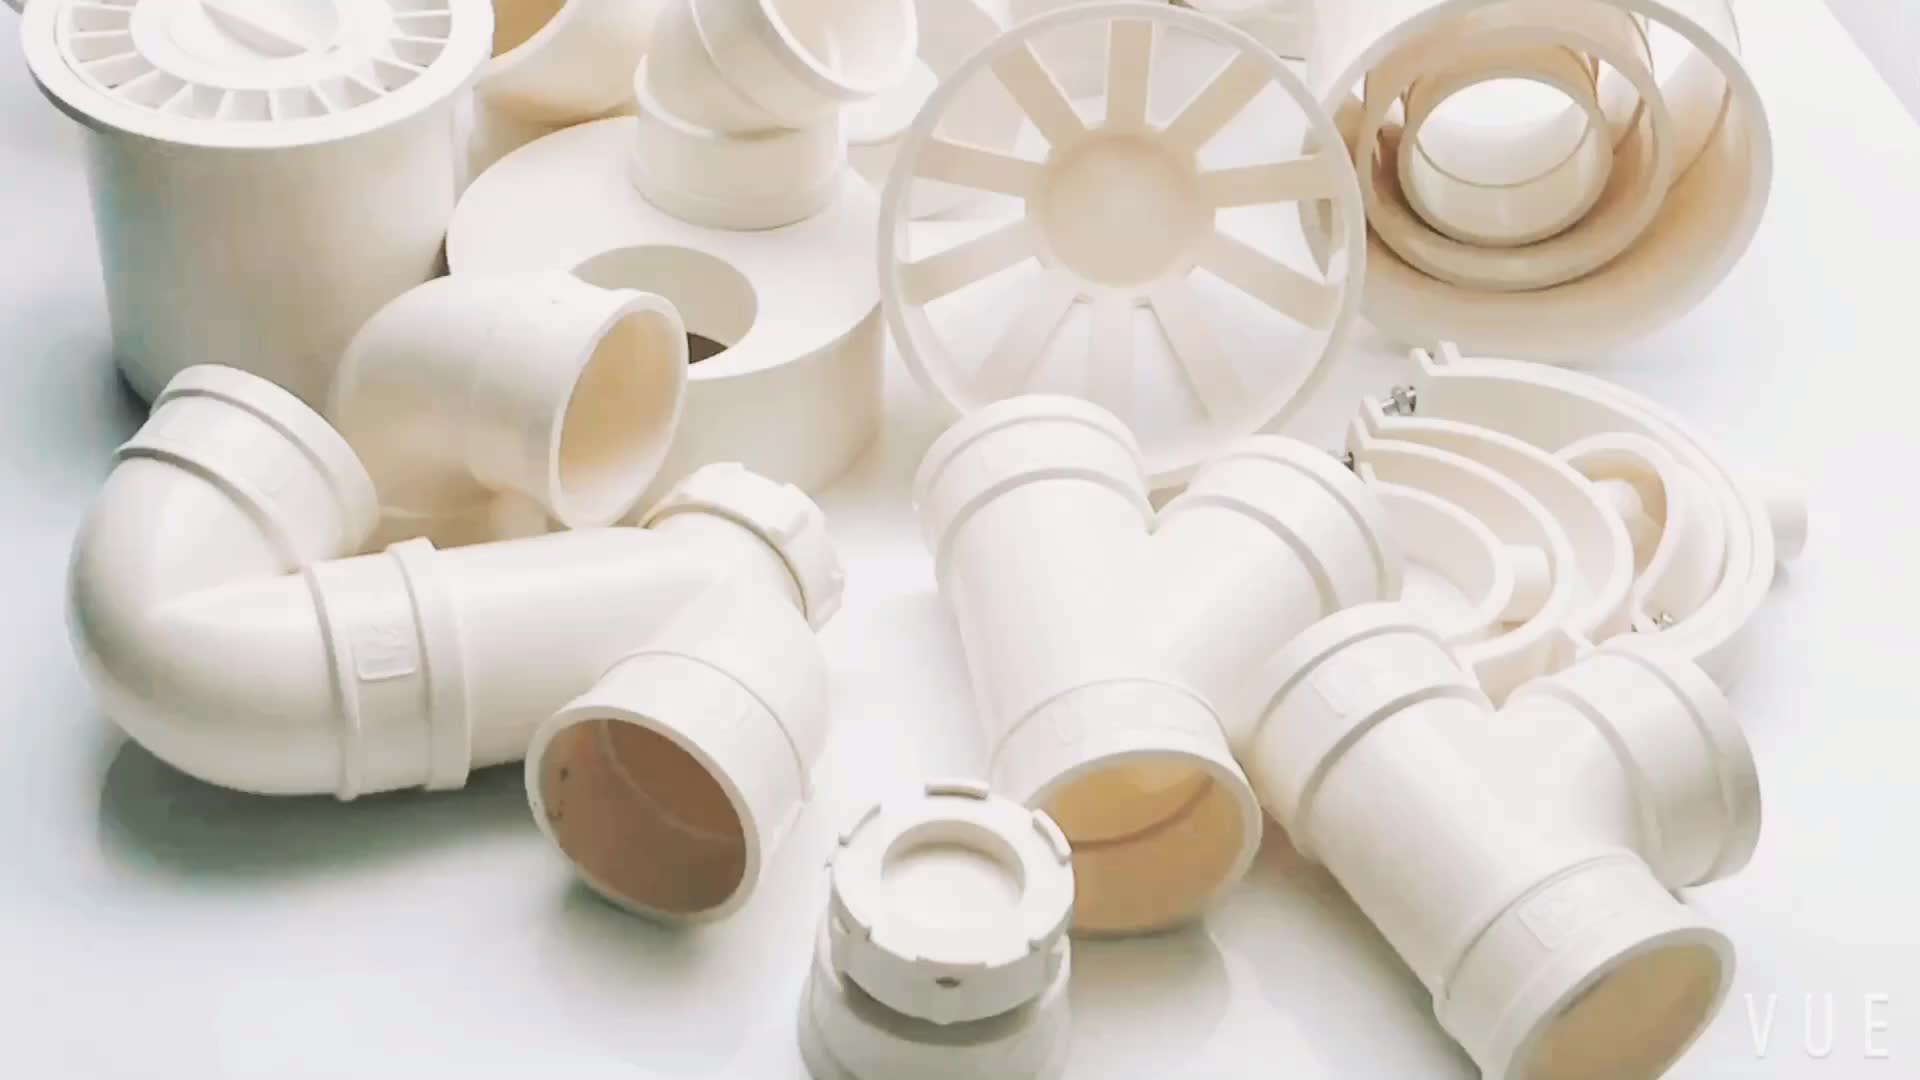 alibaba upvc connectors fittings manufacturer plastic pipe end cover 6 inch pvc vent cap